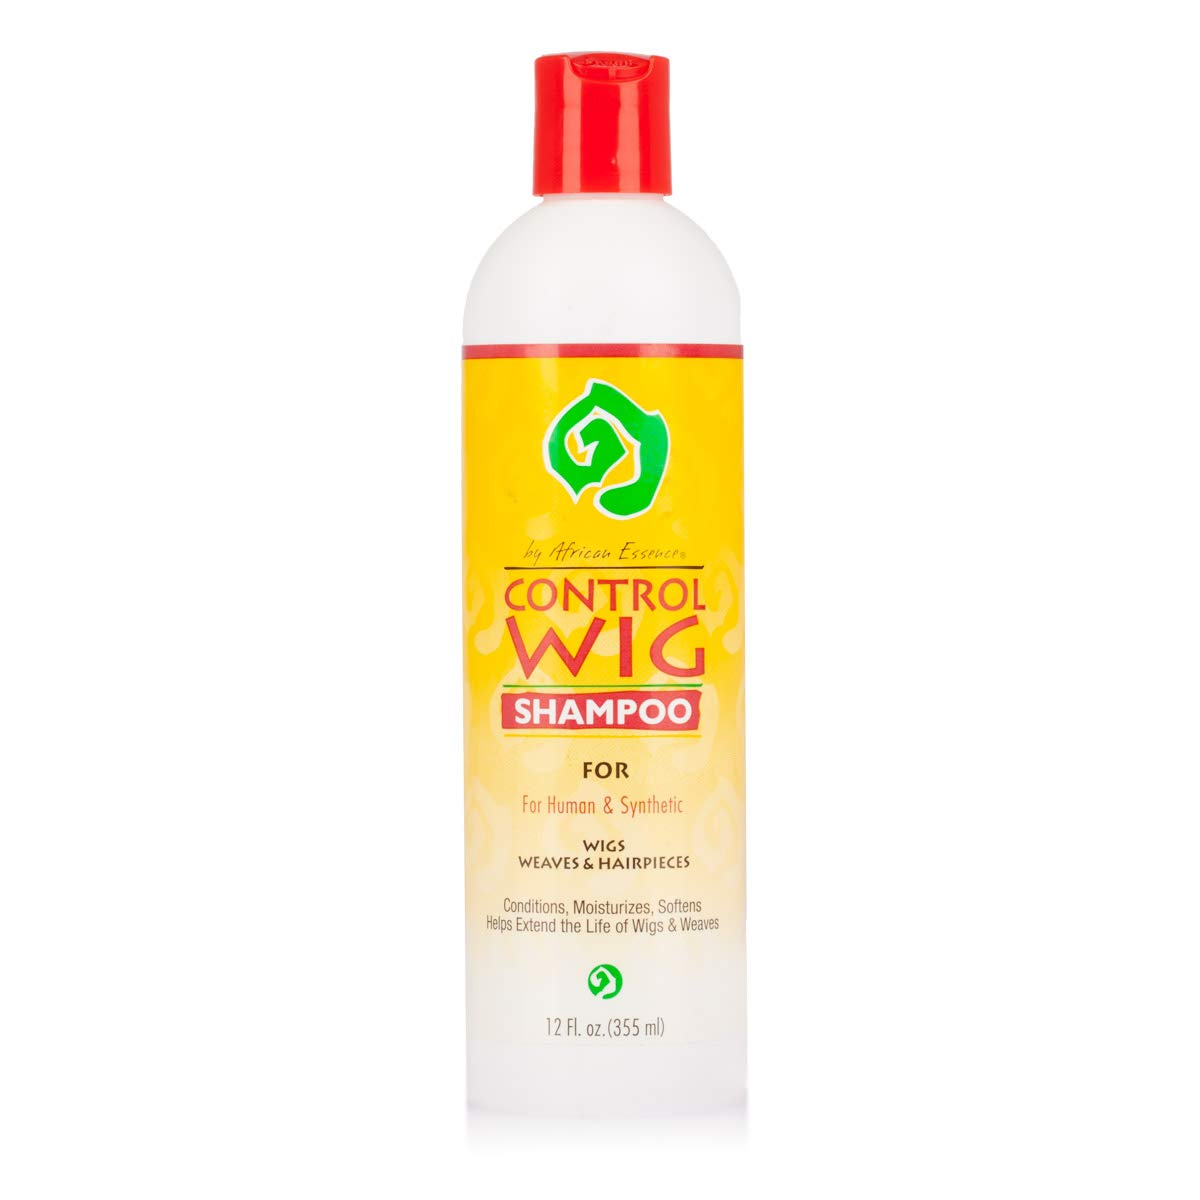 African Essence Control Wig Shampoo for Synthetic Hair Max 87% OFF Human New life and